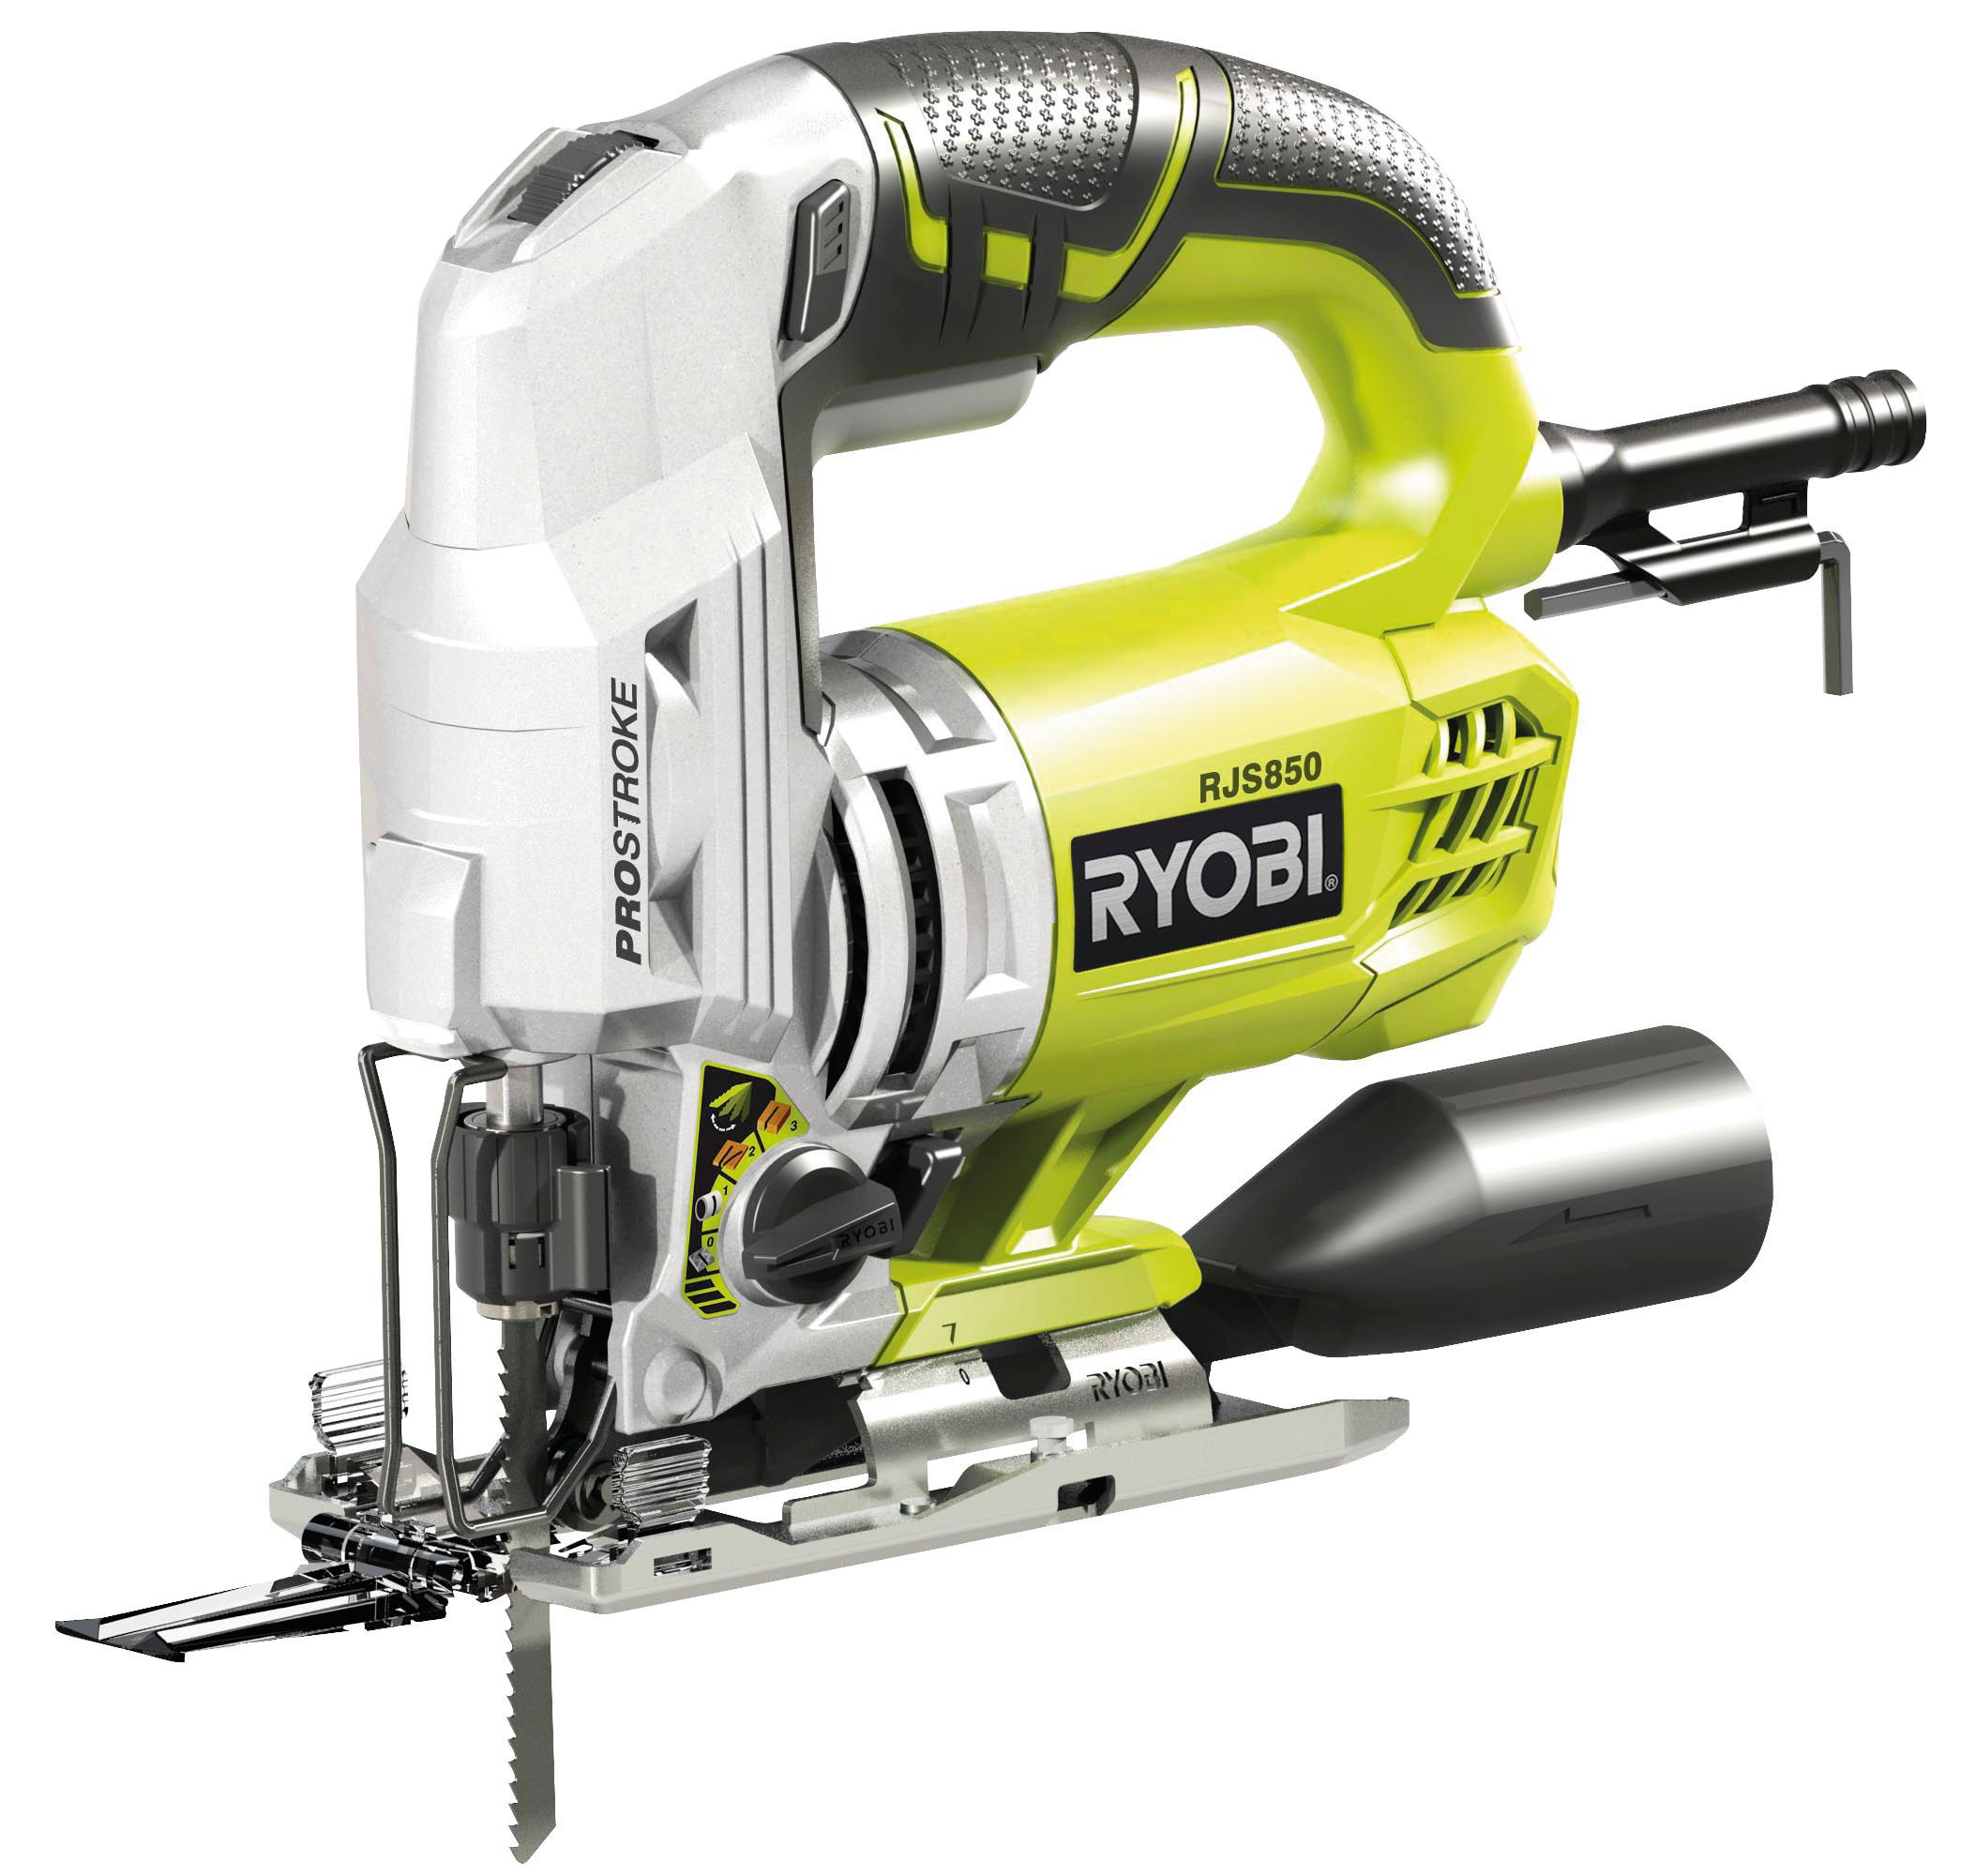 ryobi 600w 240v 4 stage pendulum action jigsaw. Black Bedroom Furniture Sets. Home Design Ideas